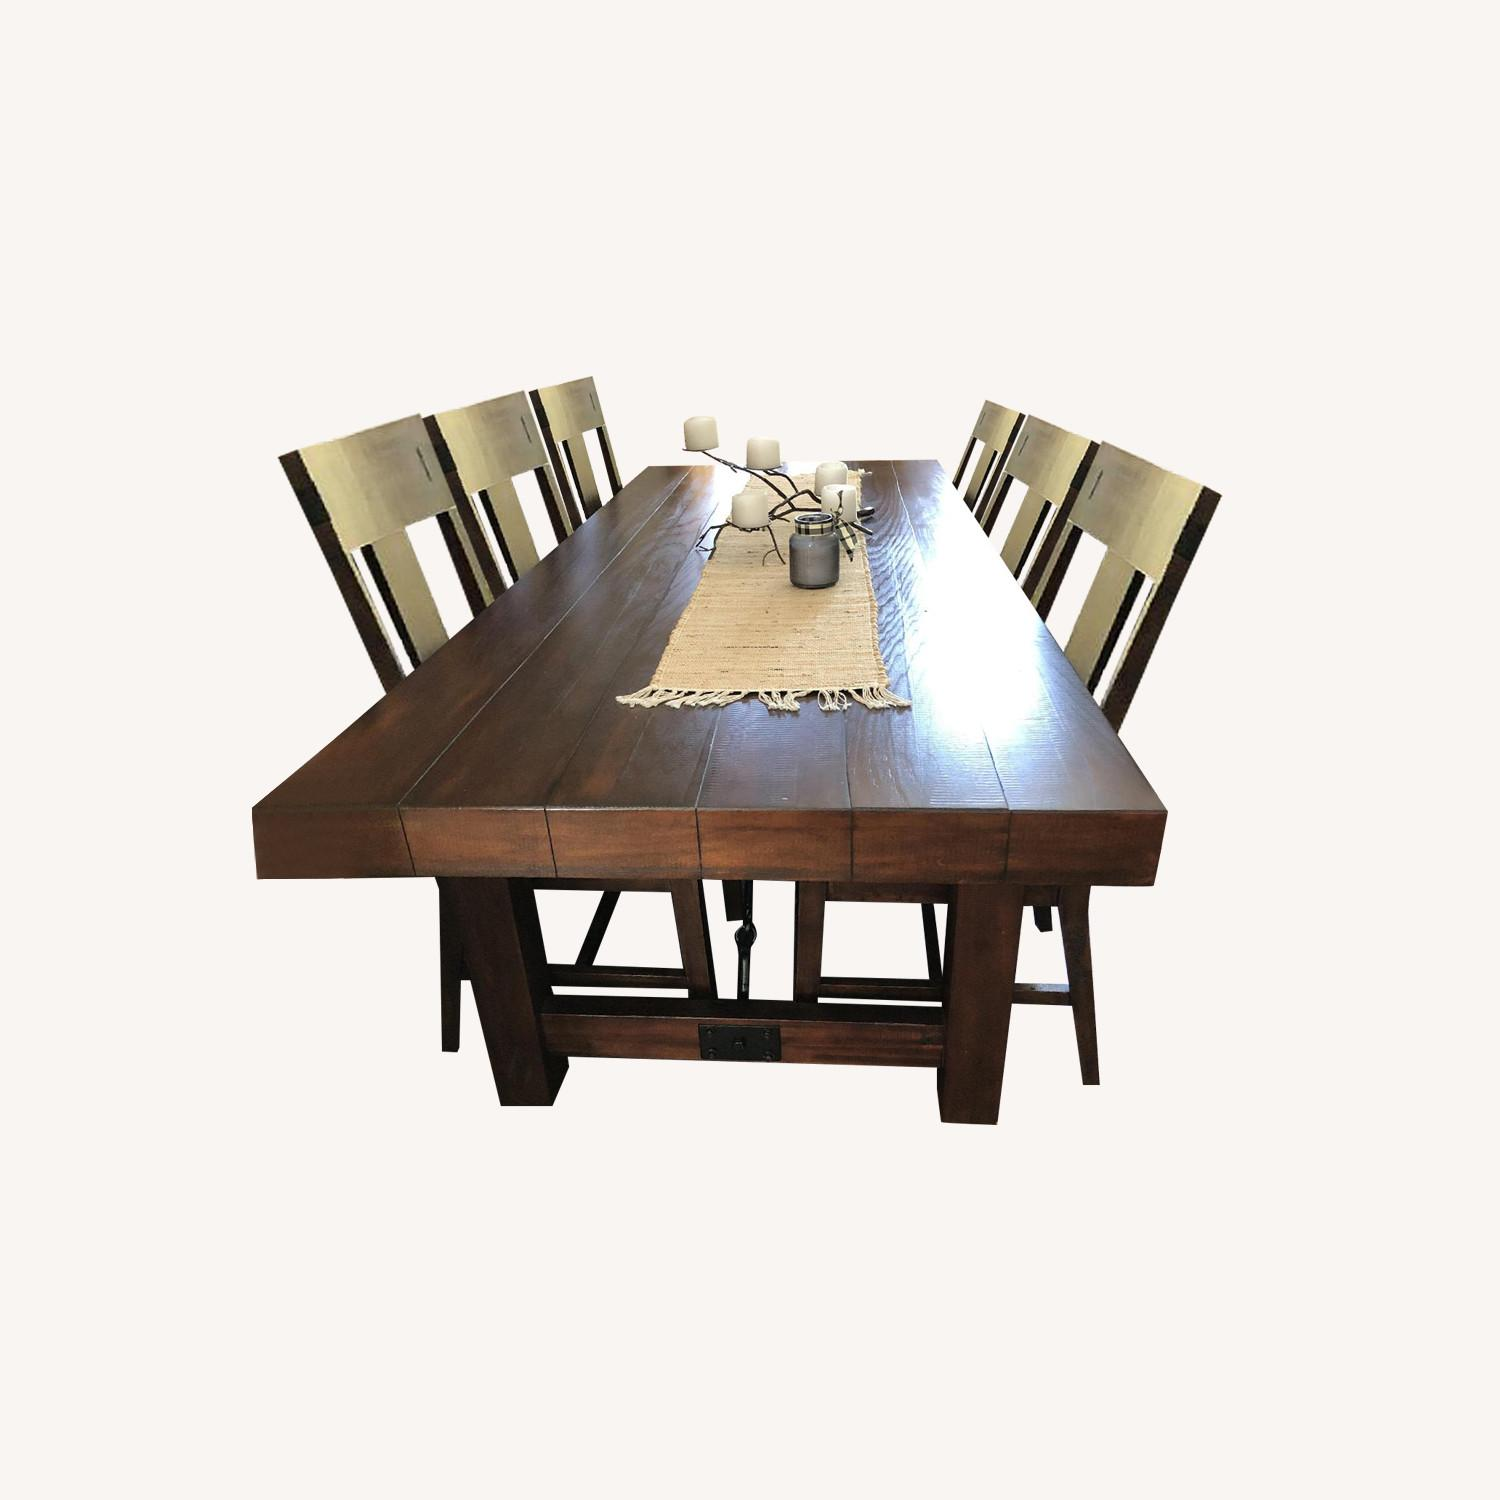 Pier 1 Dining Table w/ 6 Chairs - image-0